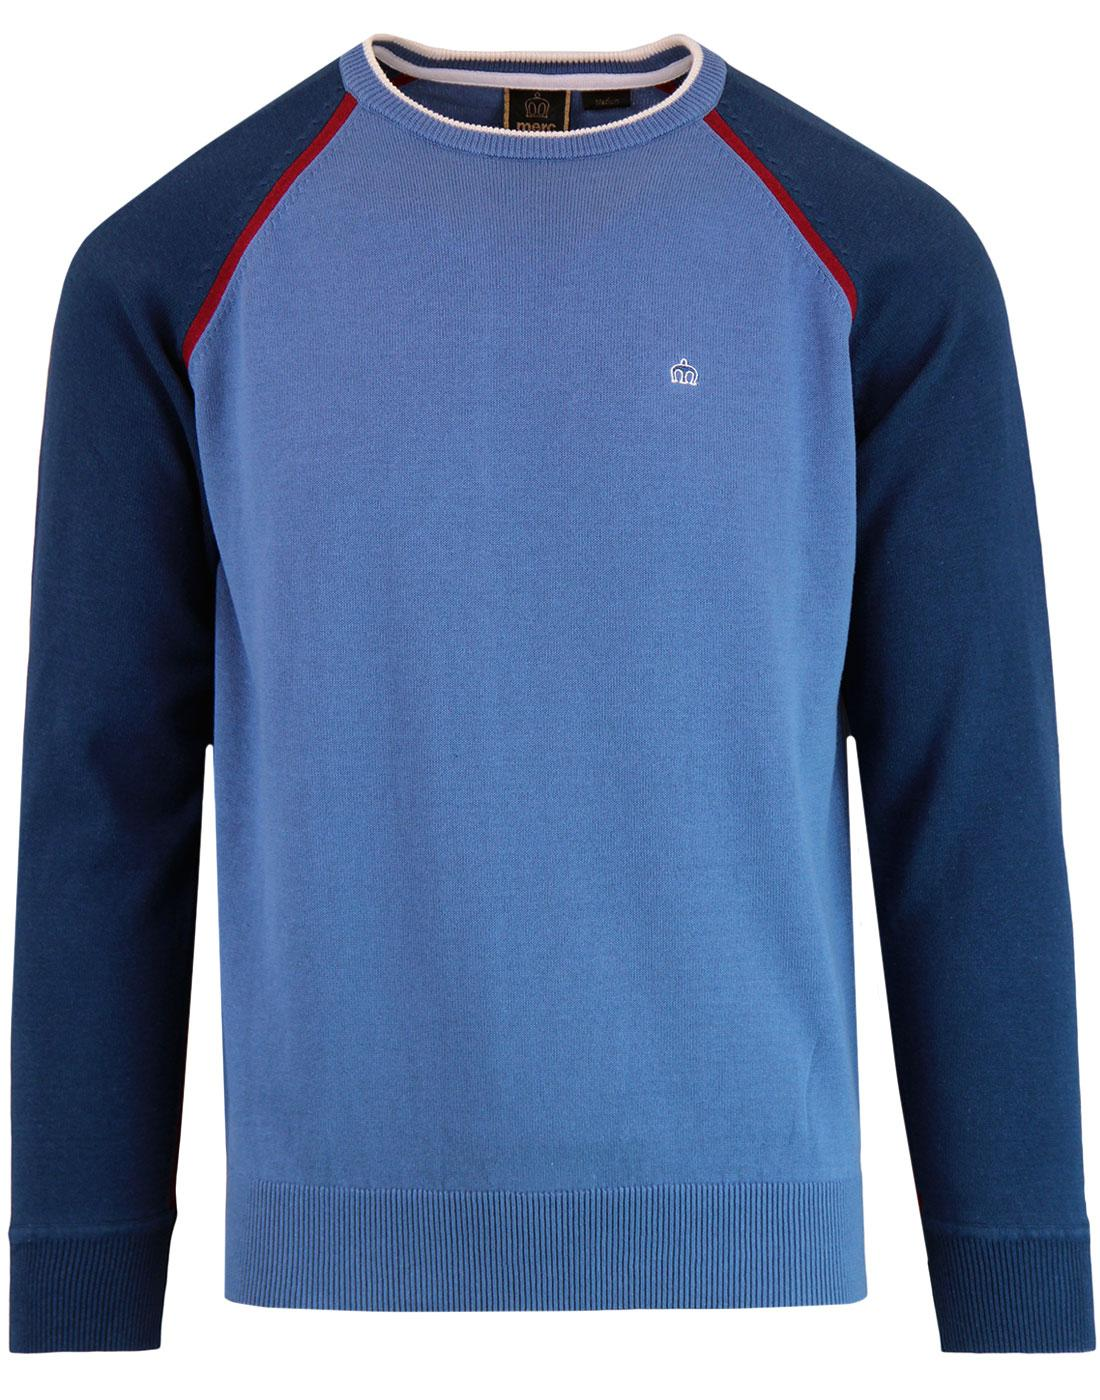 Oscar MERC Retro Mod Raglan Colour Block Jumper